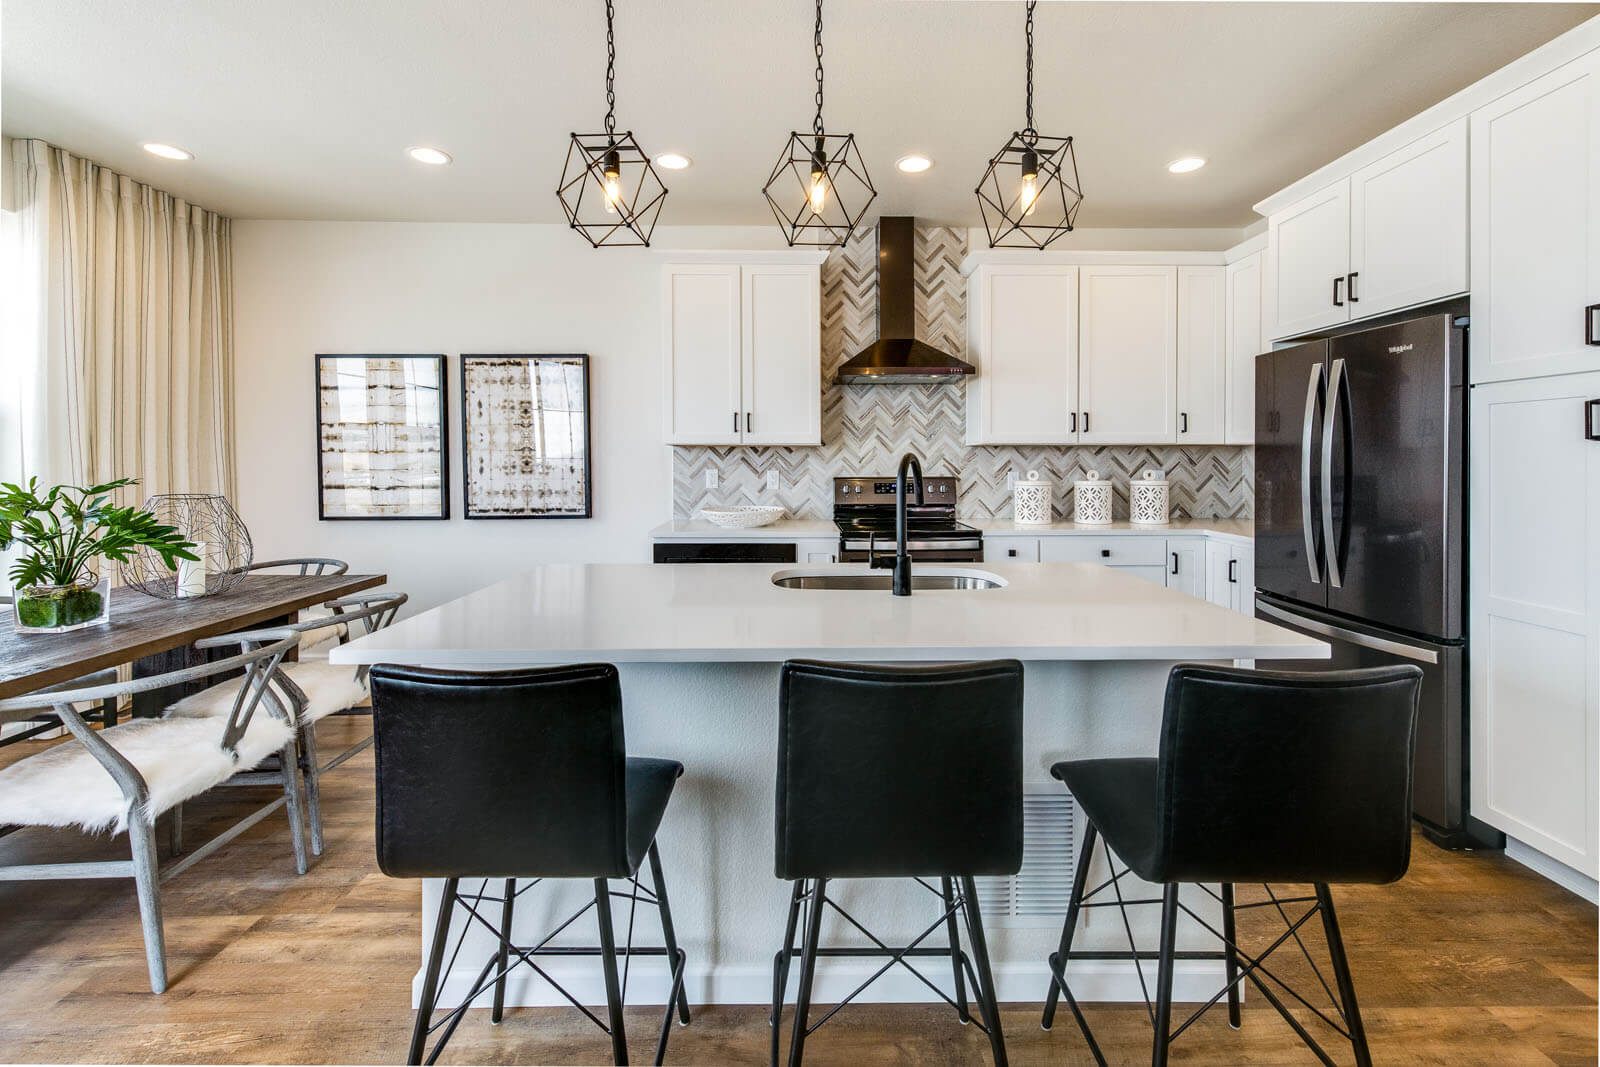 New Denver  Model Home Juniper in Lincoln Creek, located at 6829 Dewey Drive, Parker, CO Built By Cardel Homes Denver